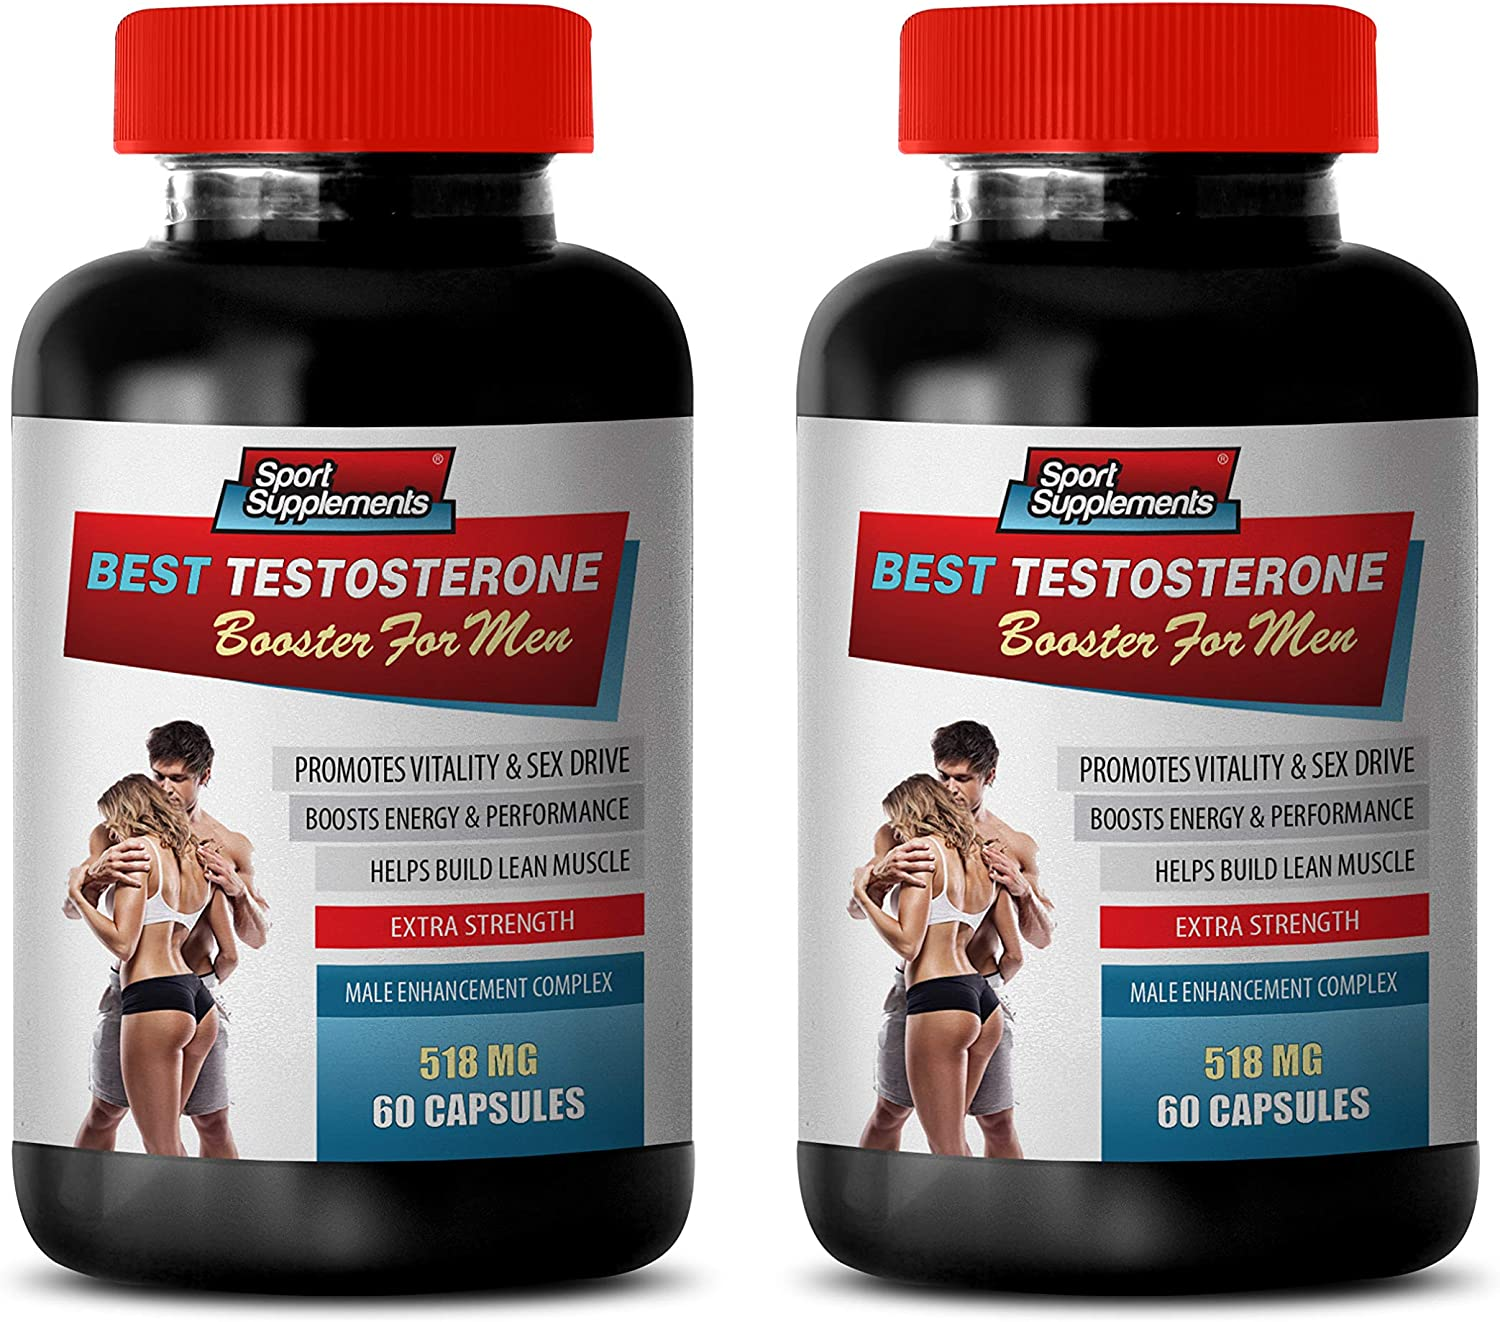 Amazon.com: Testosterone Booster Vitamins - Best Testosterone Booster for Men - Male Enhancement Complex - Fenugreek Dietary Supplement - 2 Bottles 120 Capsules: Health & Personal Care